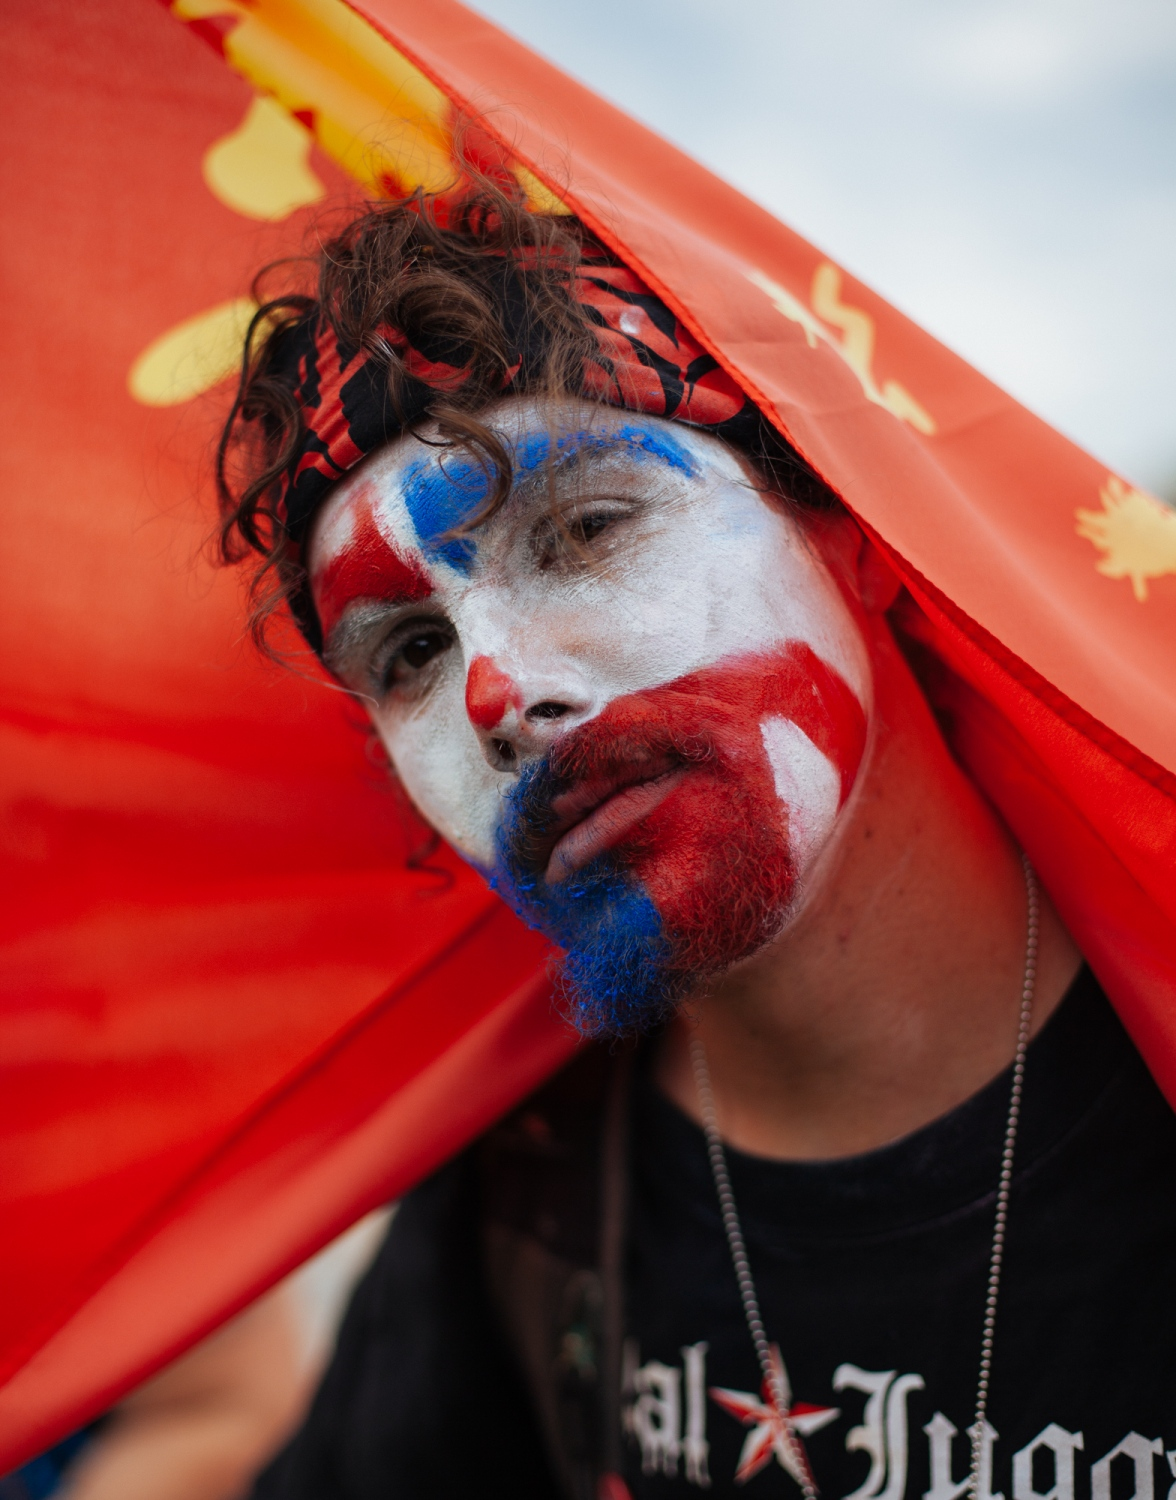 A male in Juggalo face paint drapes himself with a red flag that displays an orange hatchet man logo at the Juggalo March Juggalo March at the National Mall, Washington, D.C., U.S. September 16, 2017.